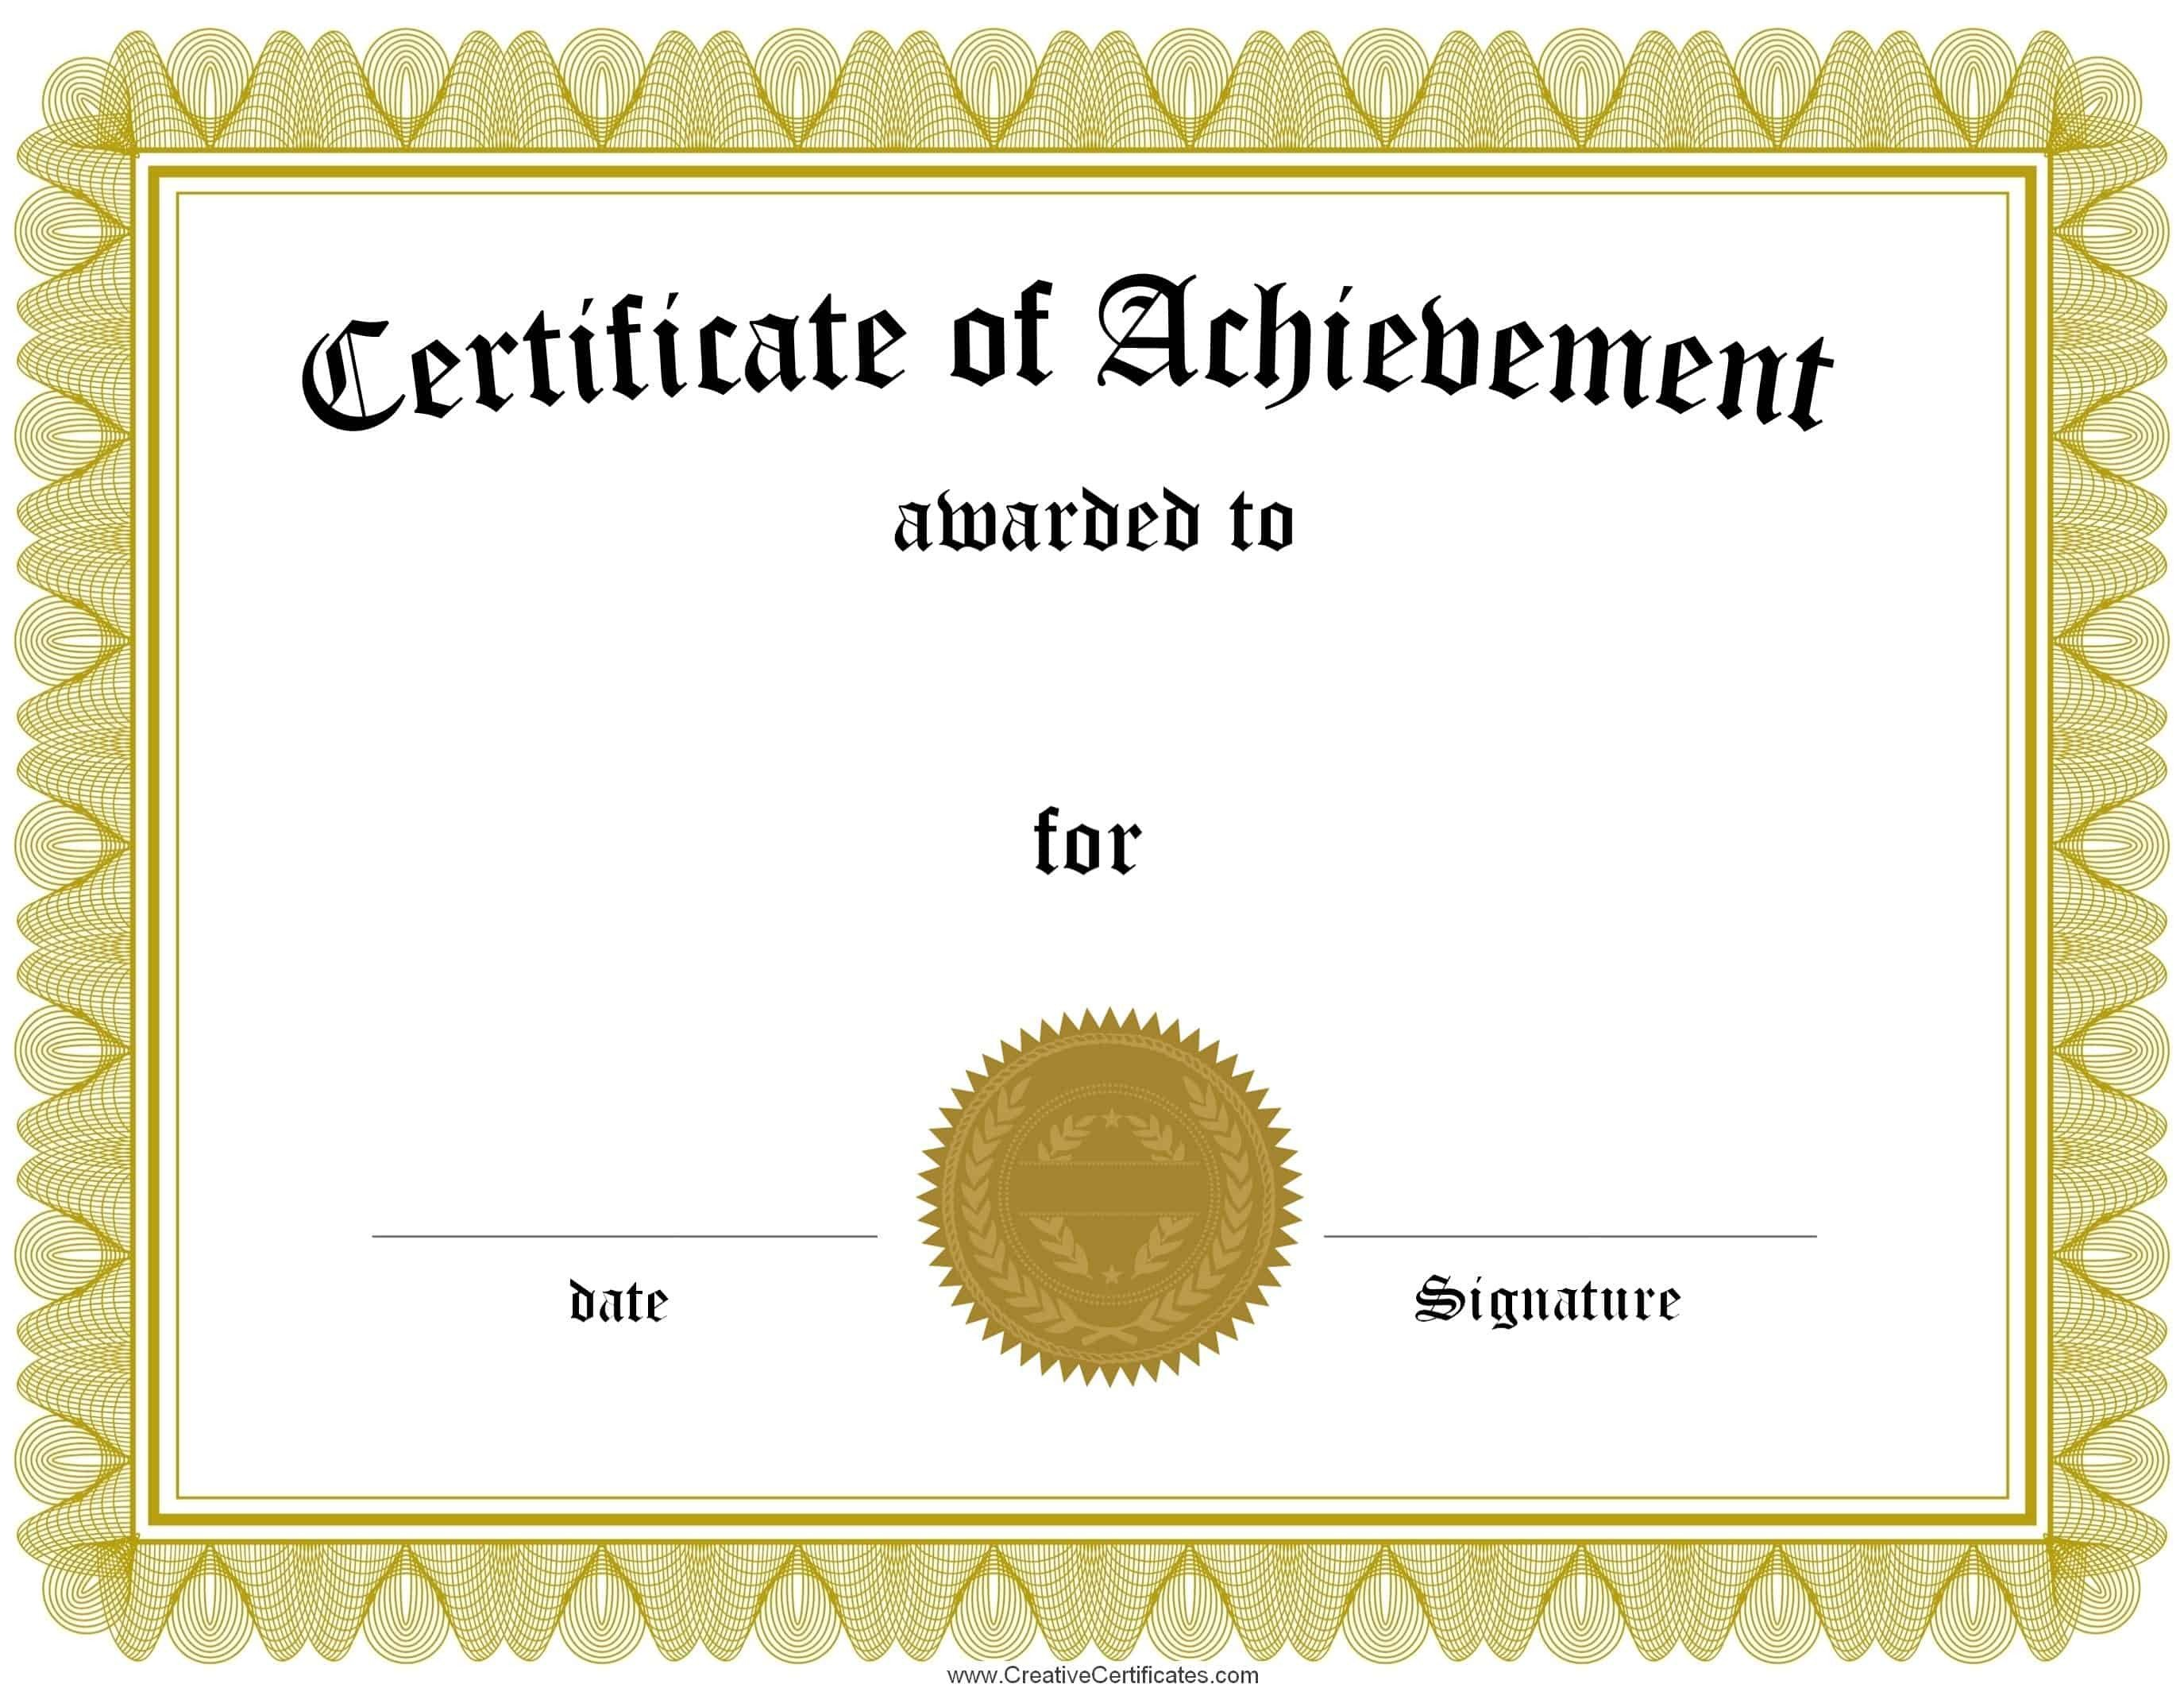 Award Certificate Template Free Free Customizable Certificate Of Achievement